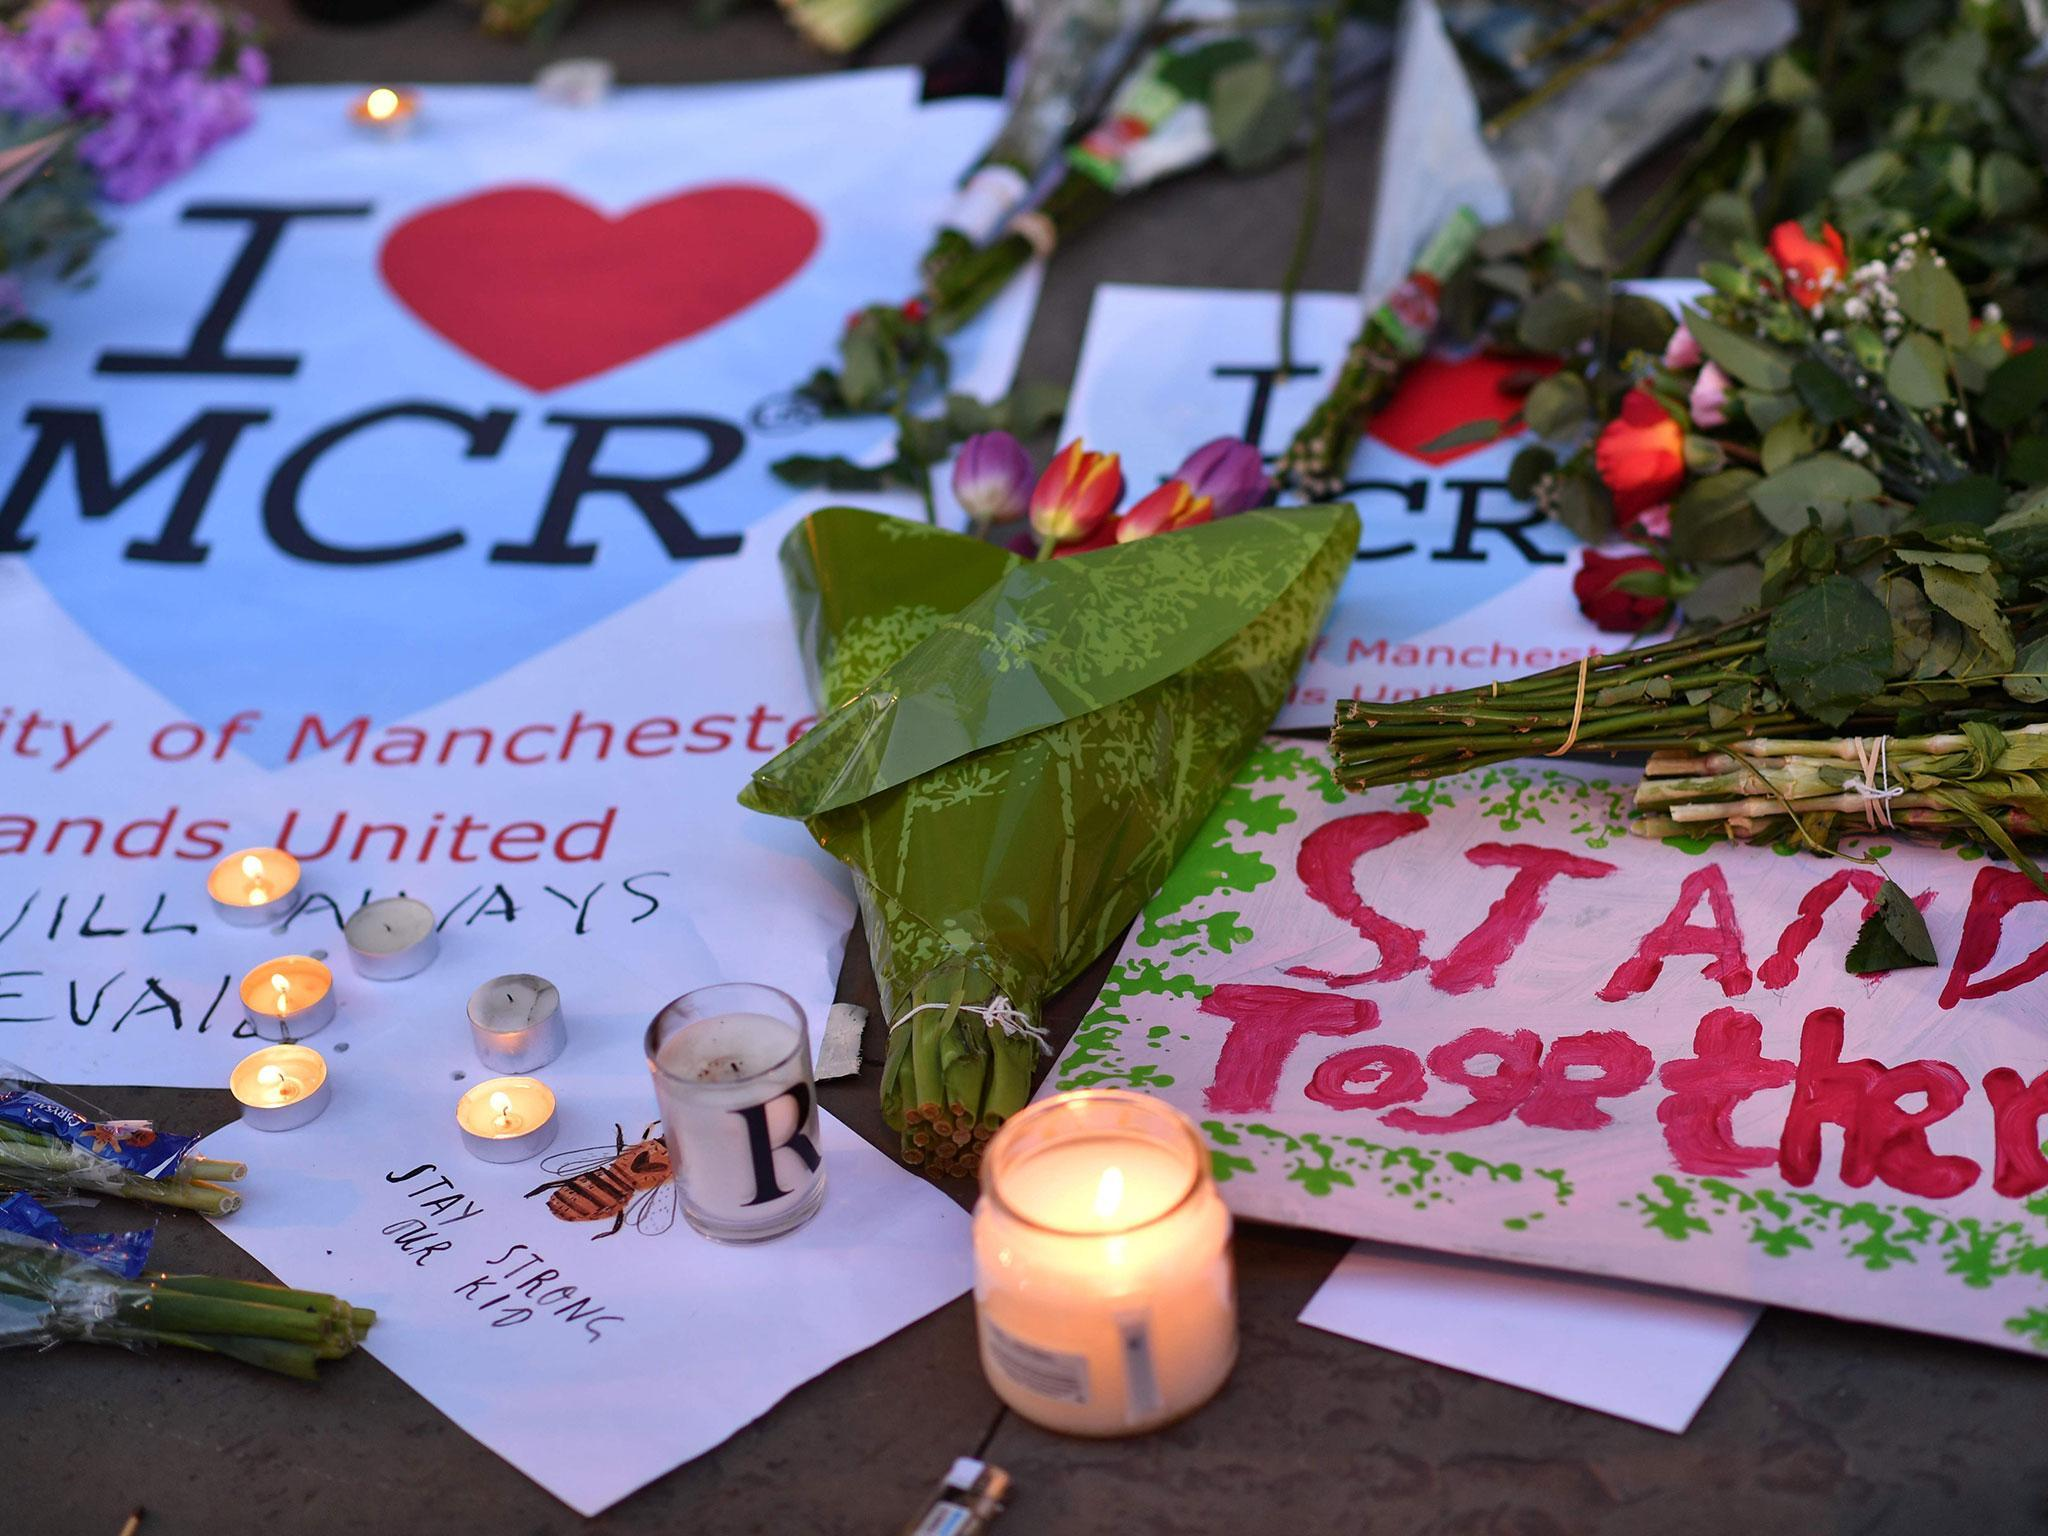 Manchester attack: MI5 may have been able to stop arena suicide bomber Salman Abedi, inquiry finds